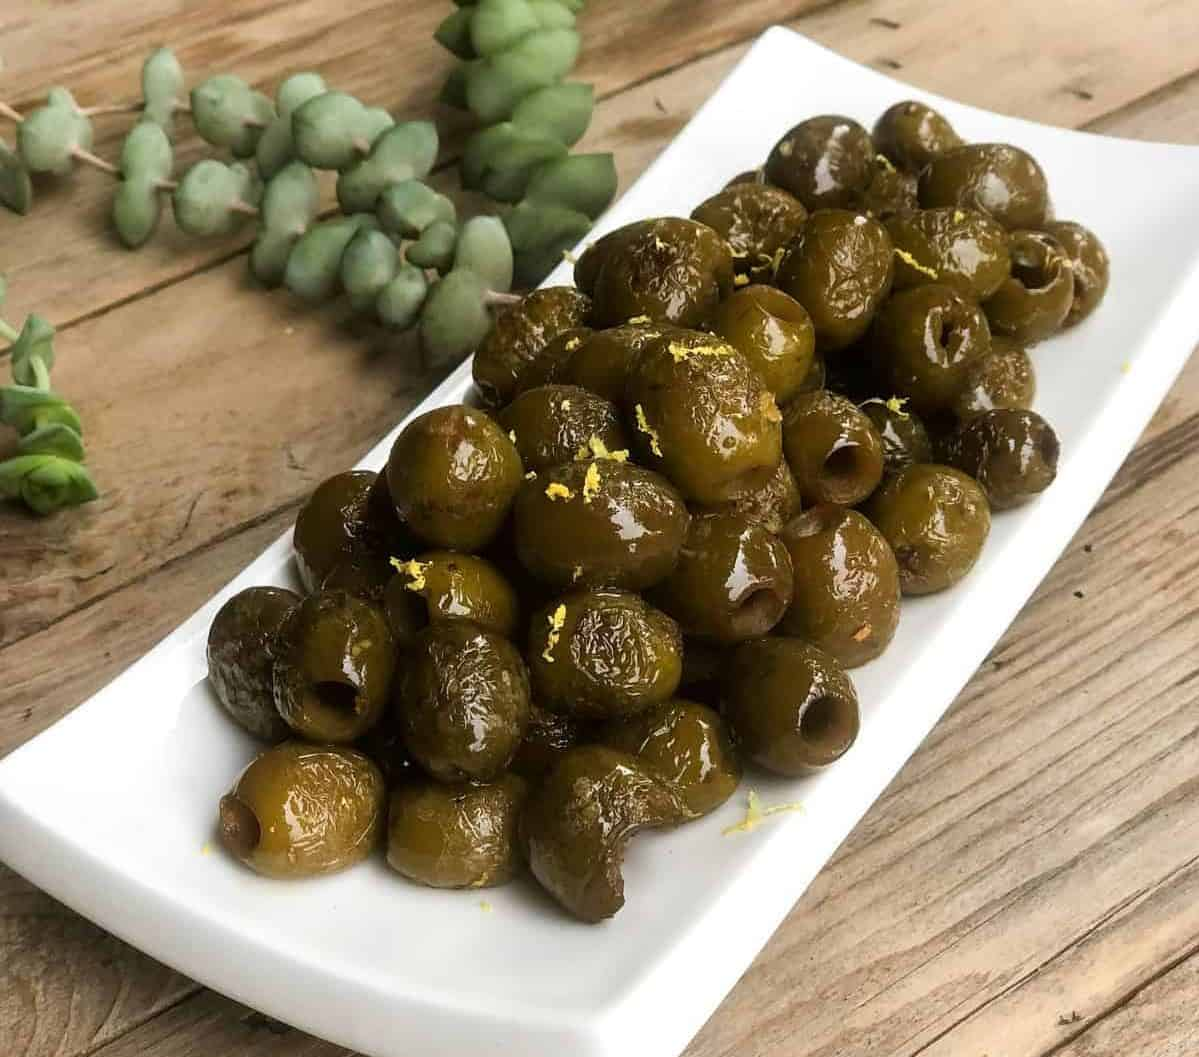 Blistered Olives Recipe using California Ripe Olives